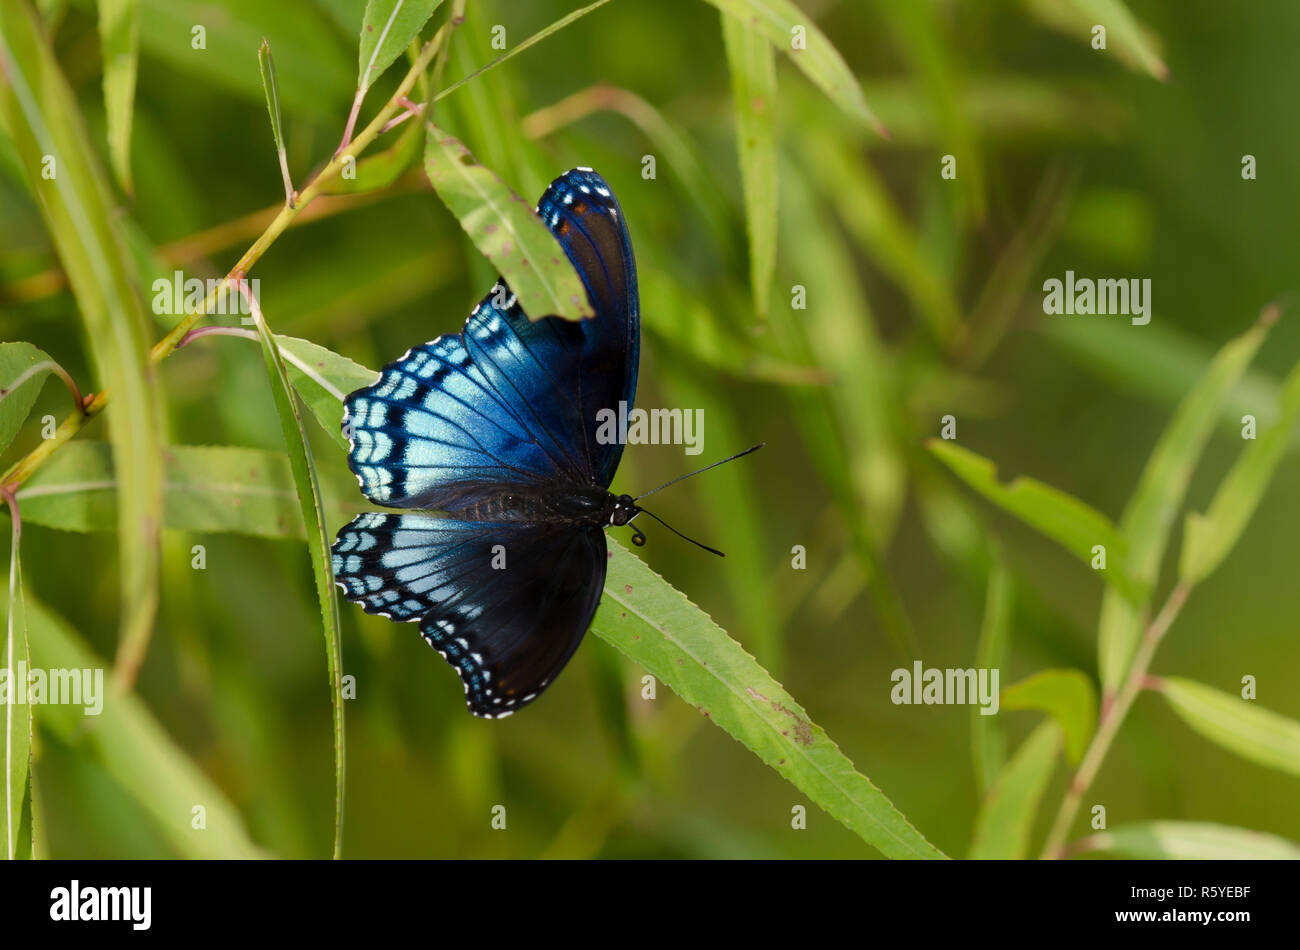 Red-spotted Purple, Limenitis arthemis astyanax, perched in larval food plant, black willow, Salix nigra - Stock Image